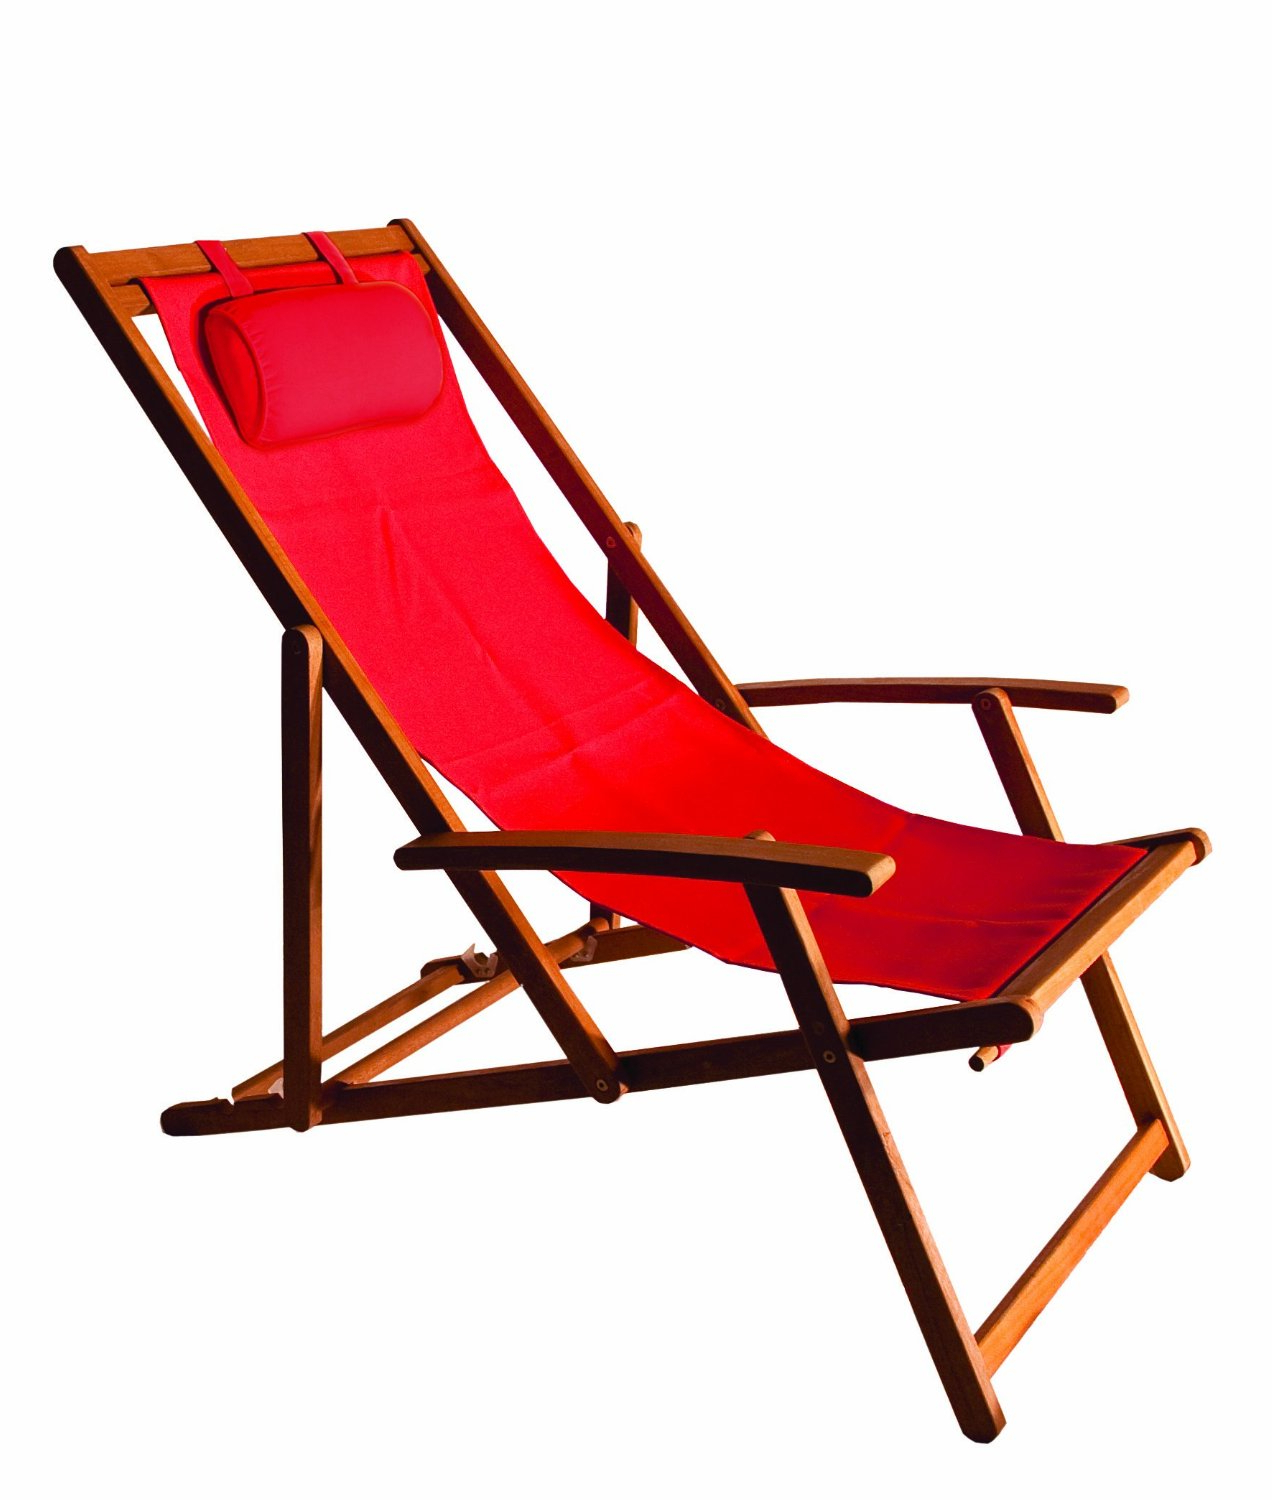 Cheap Outdoor Sling Chair Fabric, Find Outdoor Sling Chair For Well Known Outdoor Wood Sling Chairs (View 13 of 25)